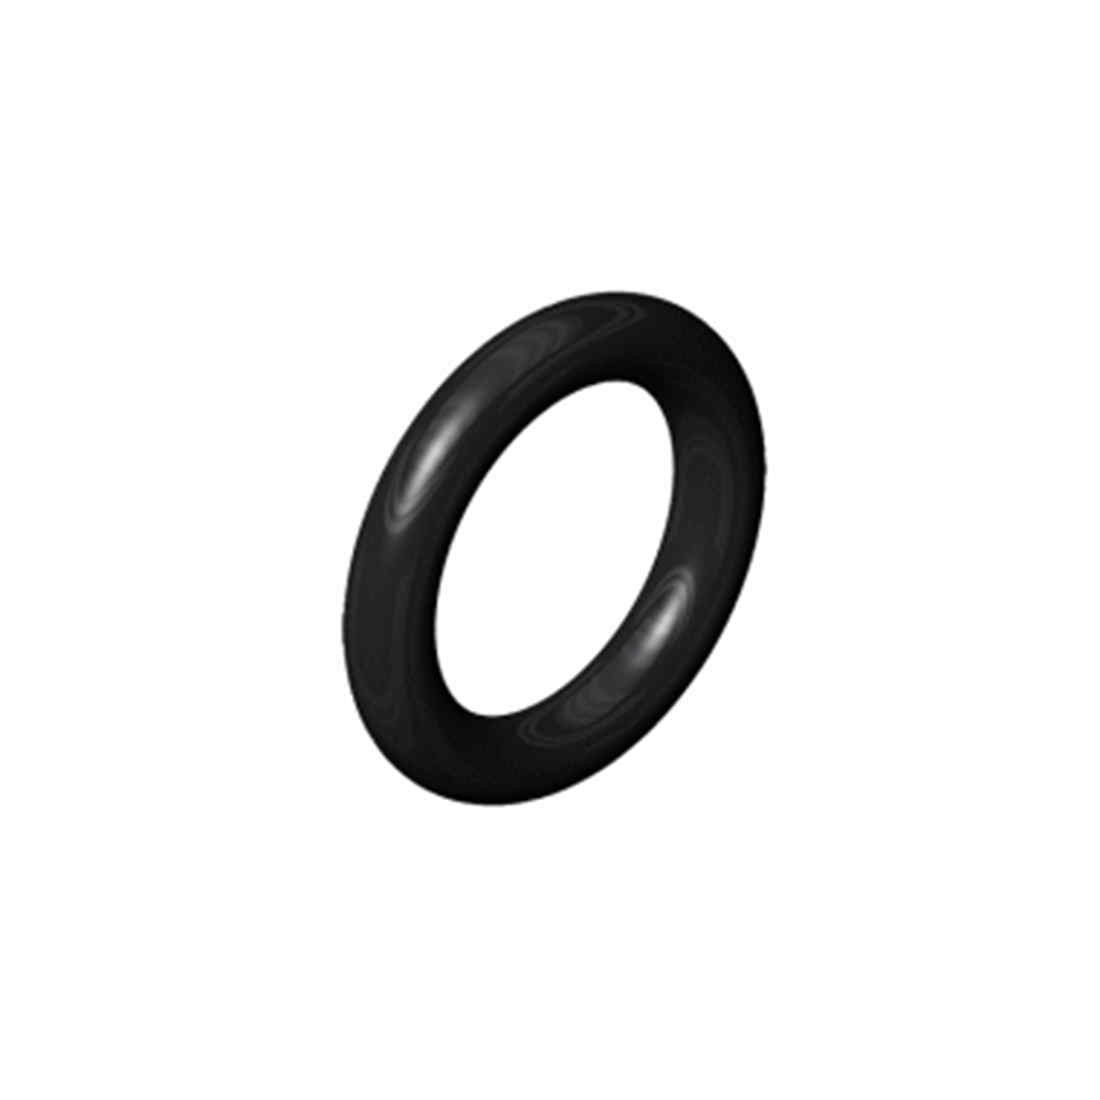 GF-2102 O-Ring Replacement for CGA Fitting